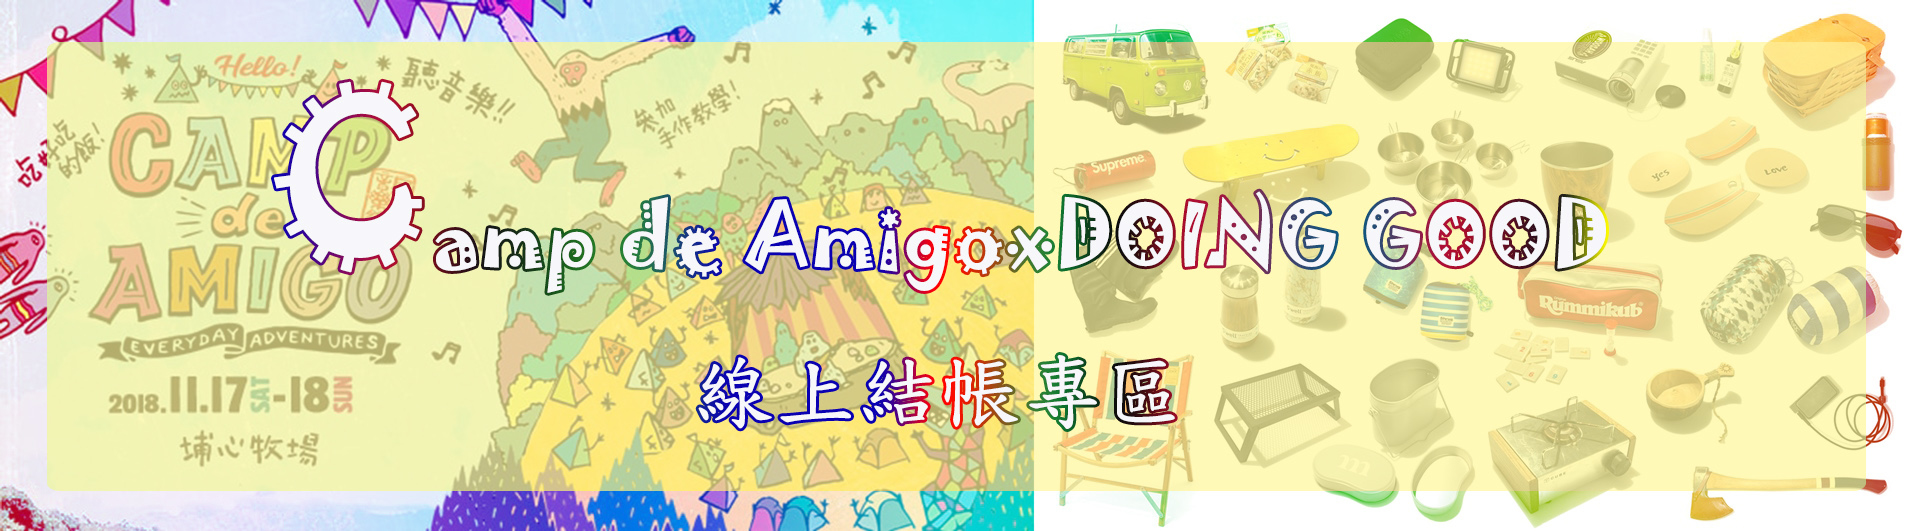 Camp de AmigoxDOING GOOD線上結帳專區